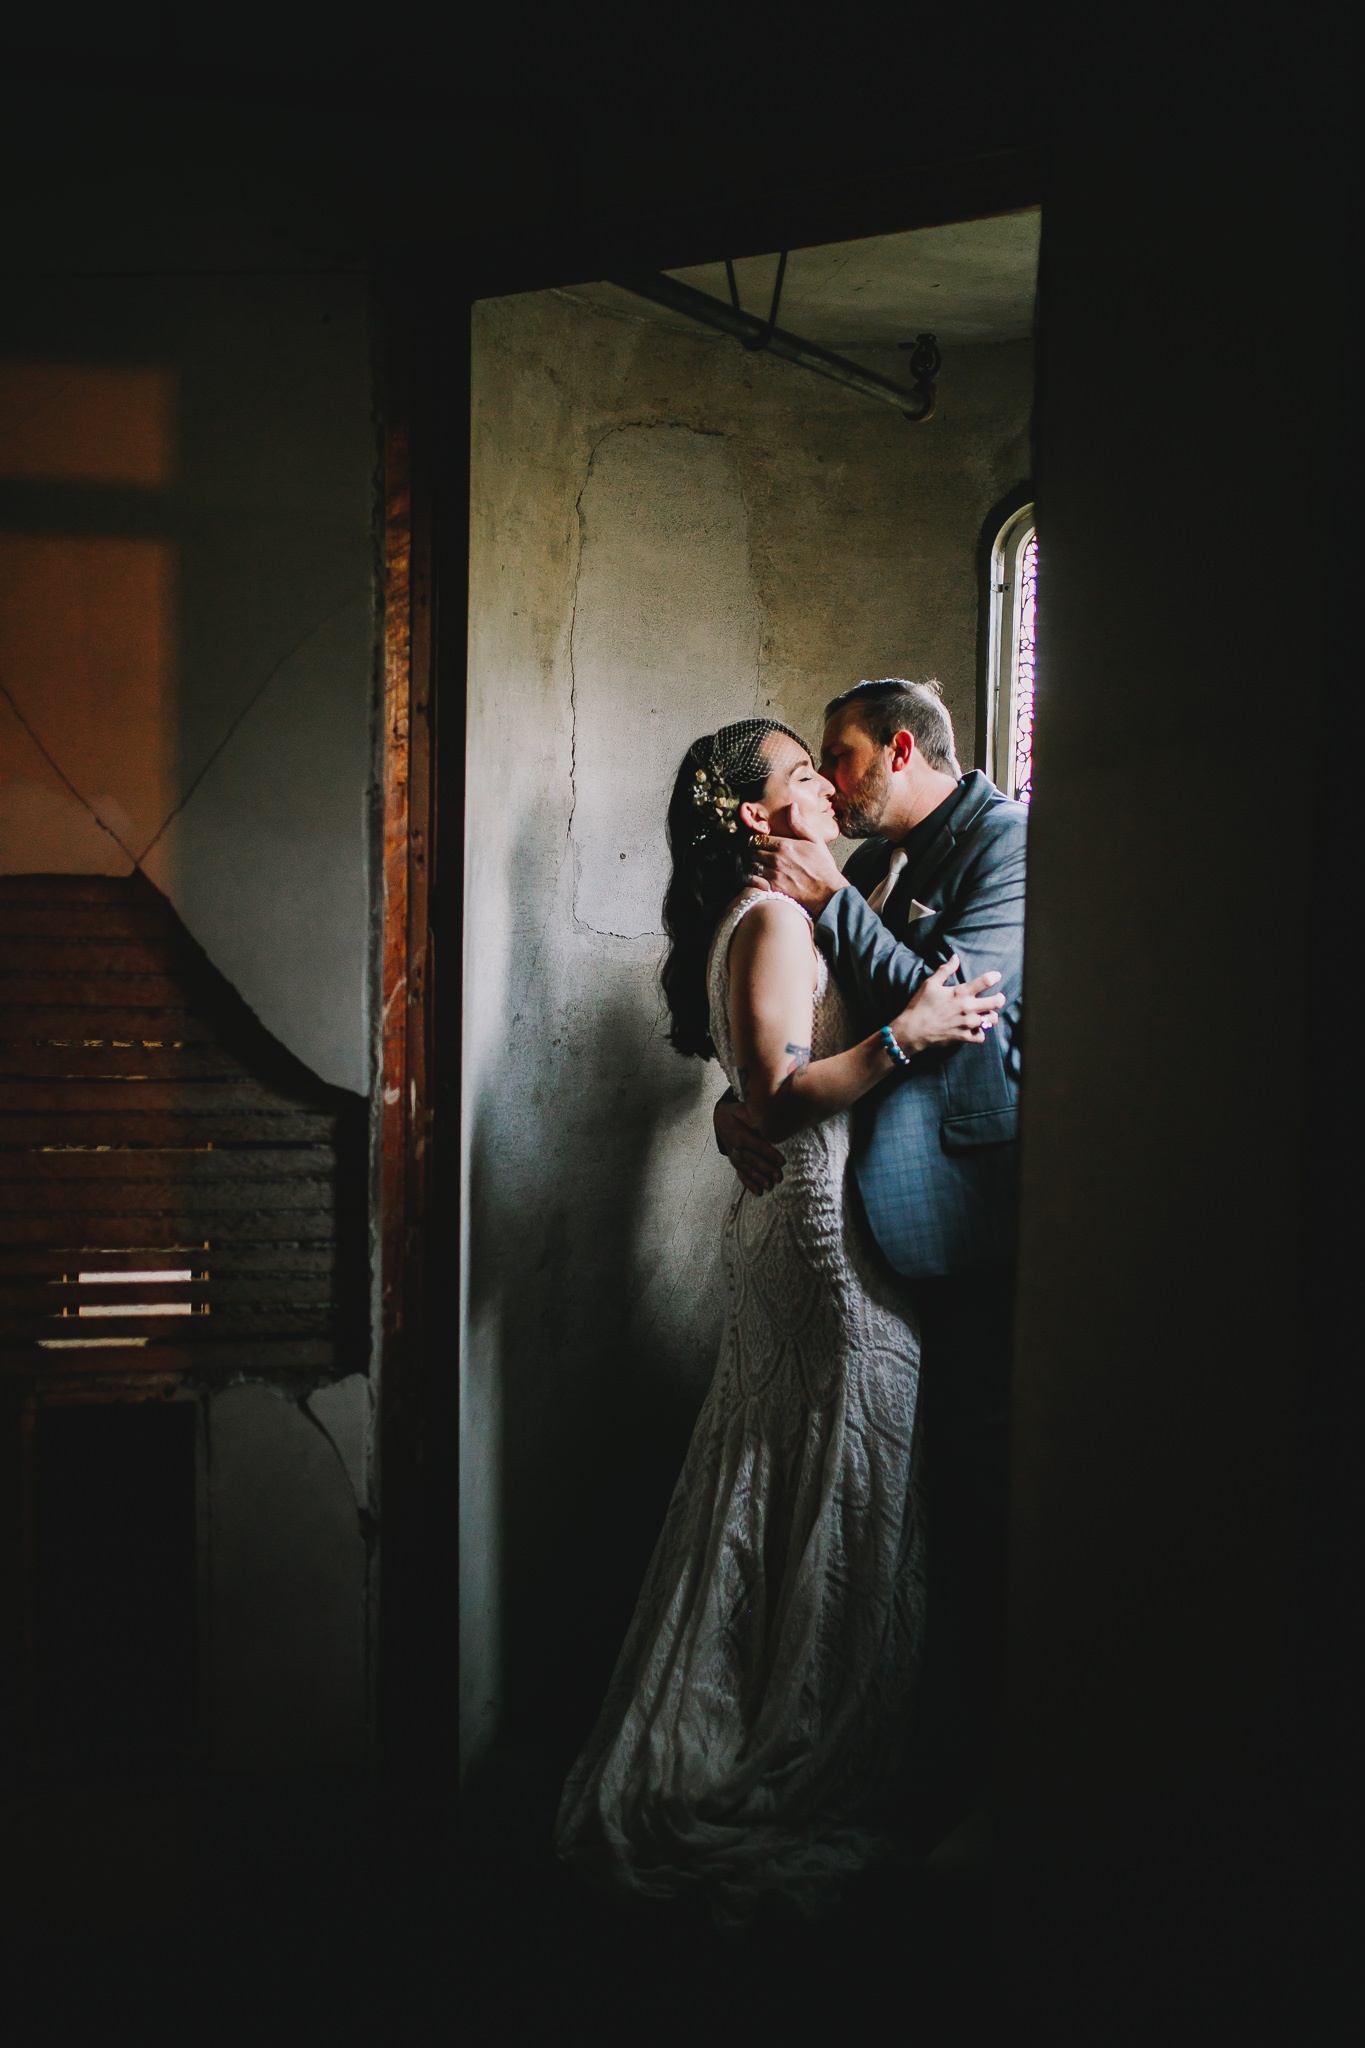 Archer Inspired Photography Sara and Aaron Winchester Mystery House NorCal San Jose California Wedding Photographer-365.jpg